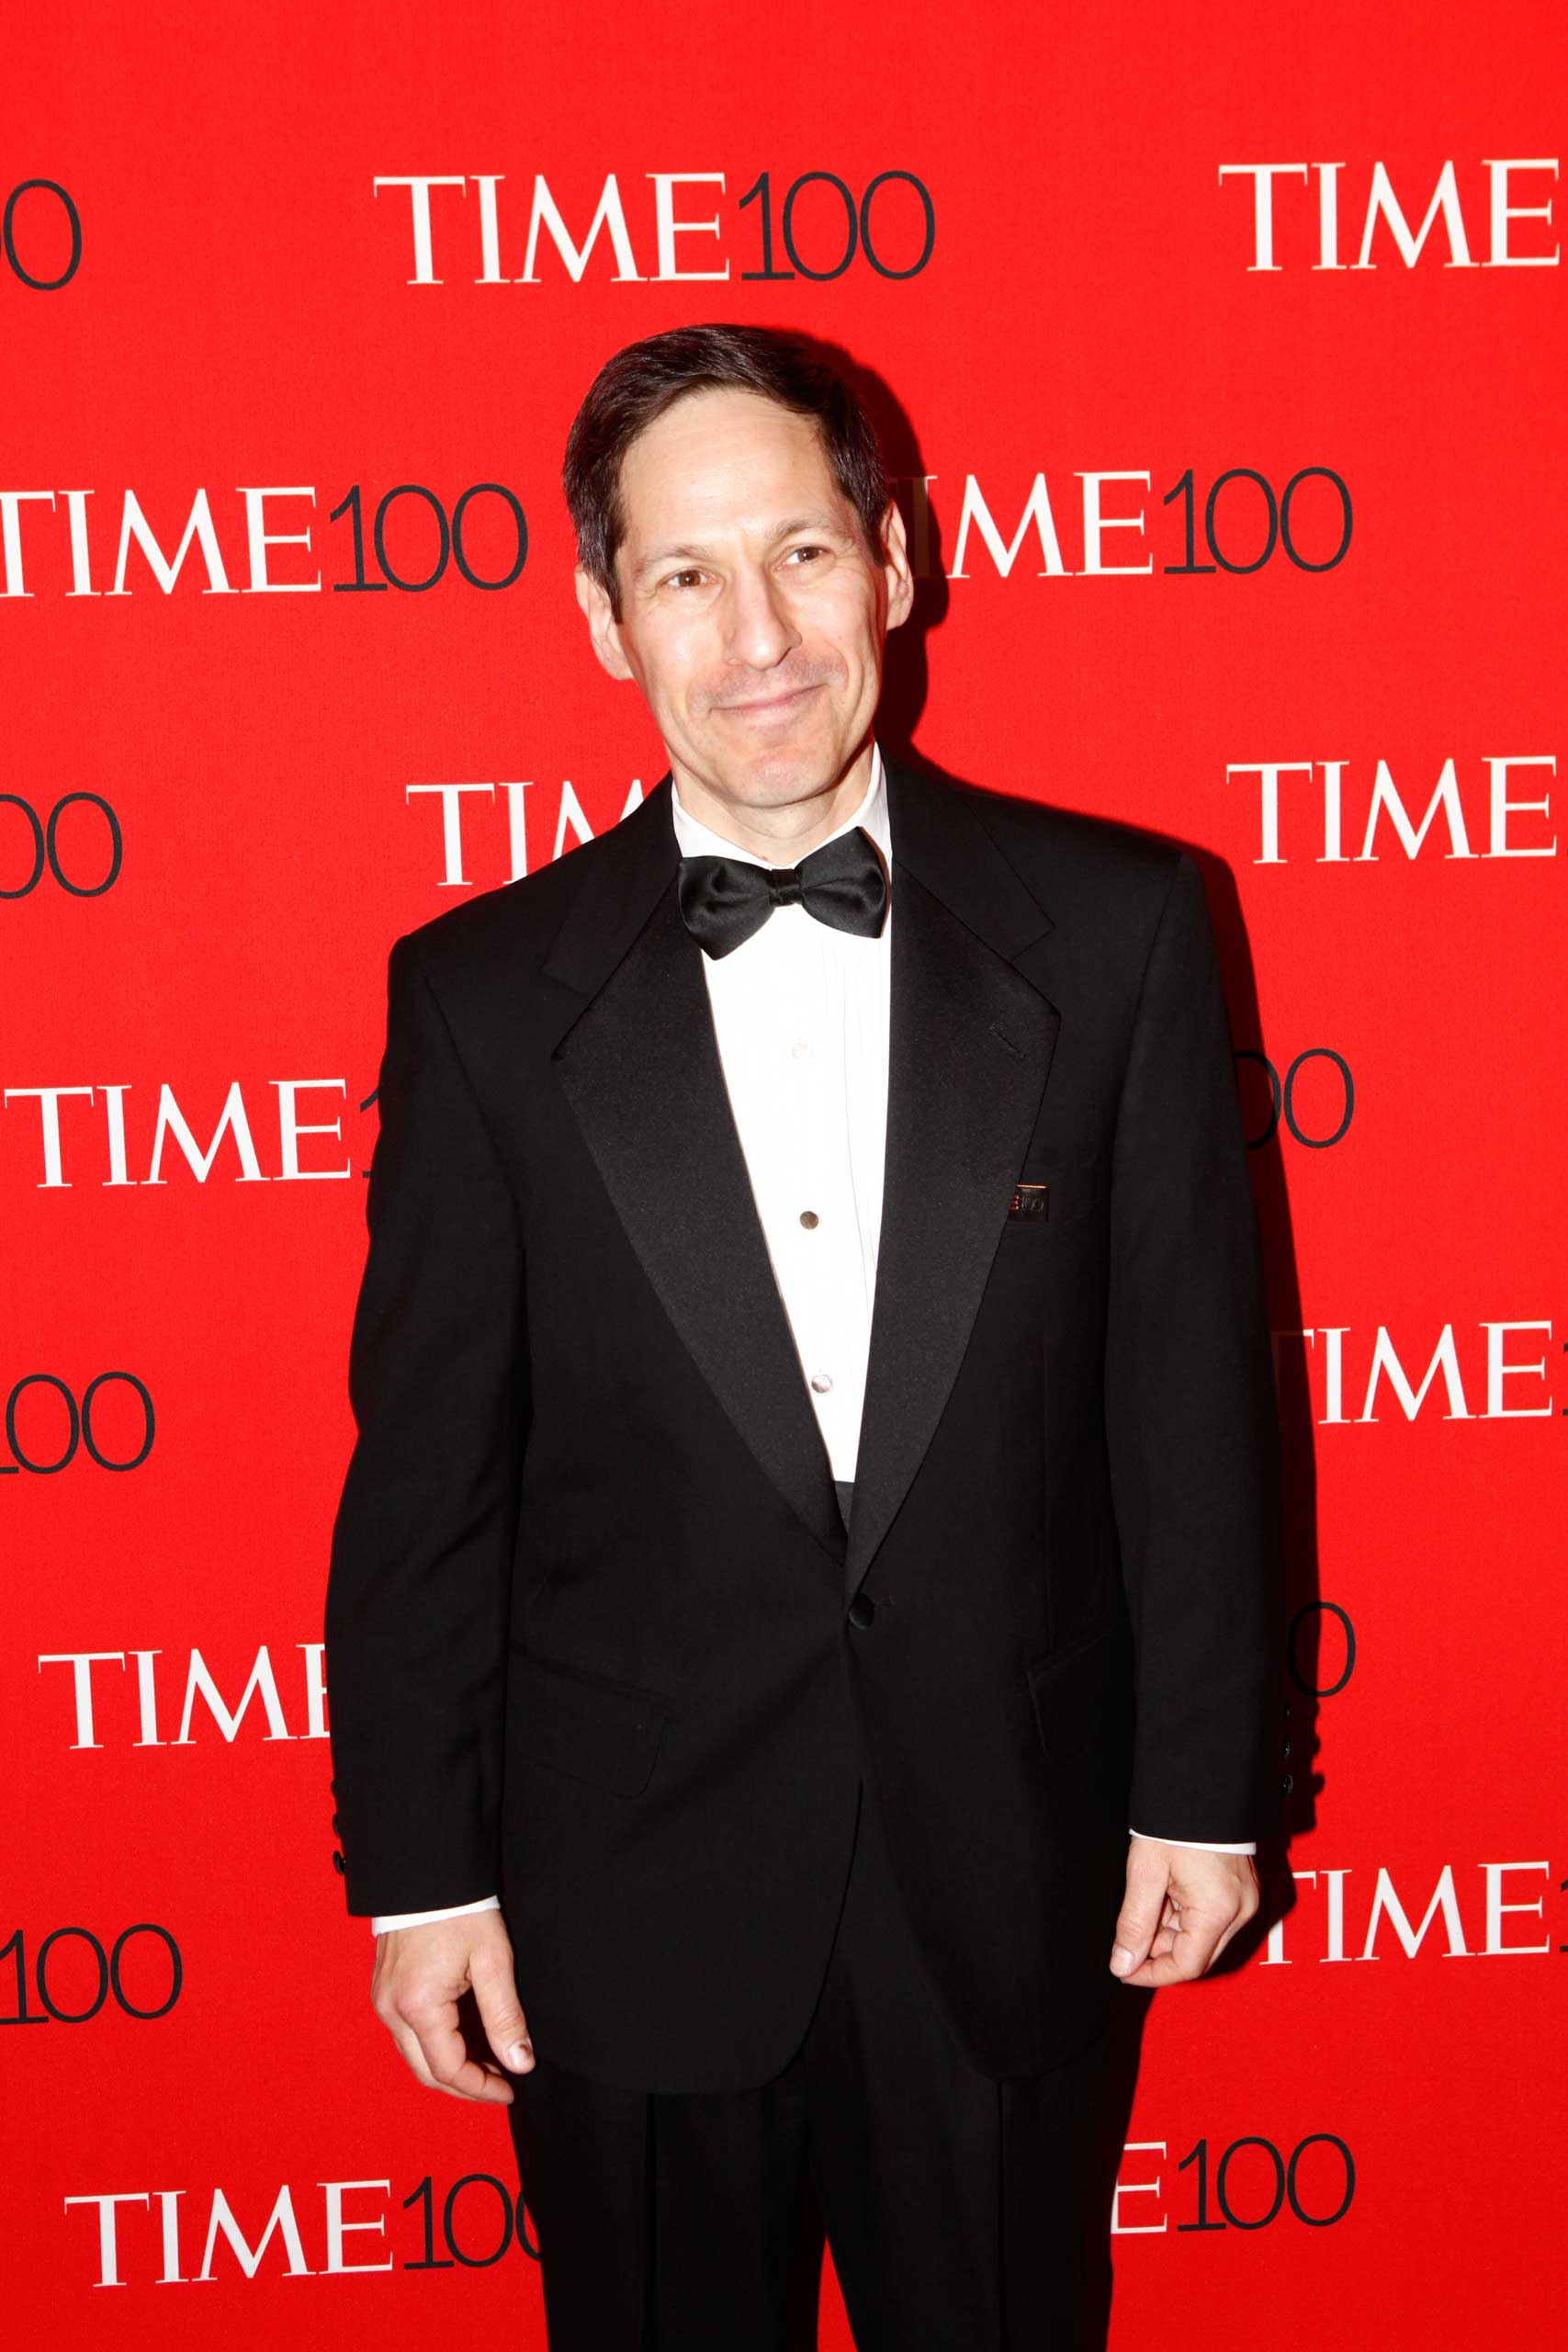 Dr. Tom Frieden attends the TIME 100 Gala at Jazz at Lincoln Center in New York City on Apr. 21, 2015.